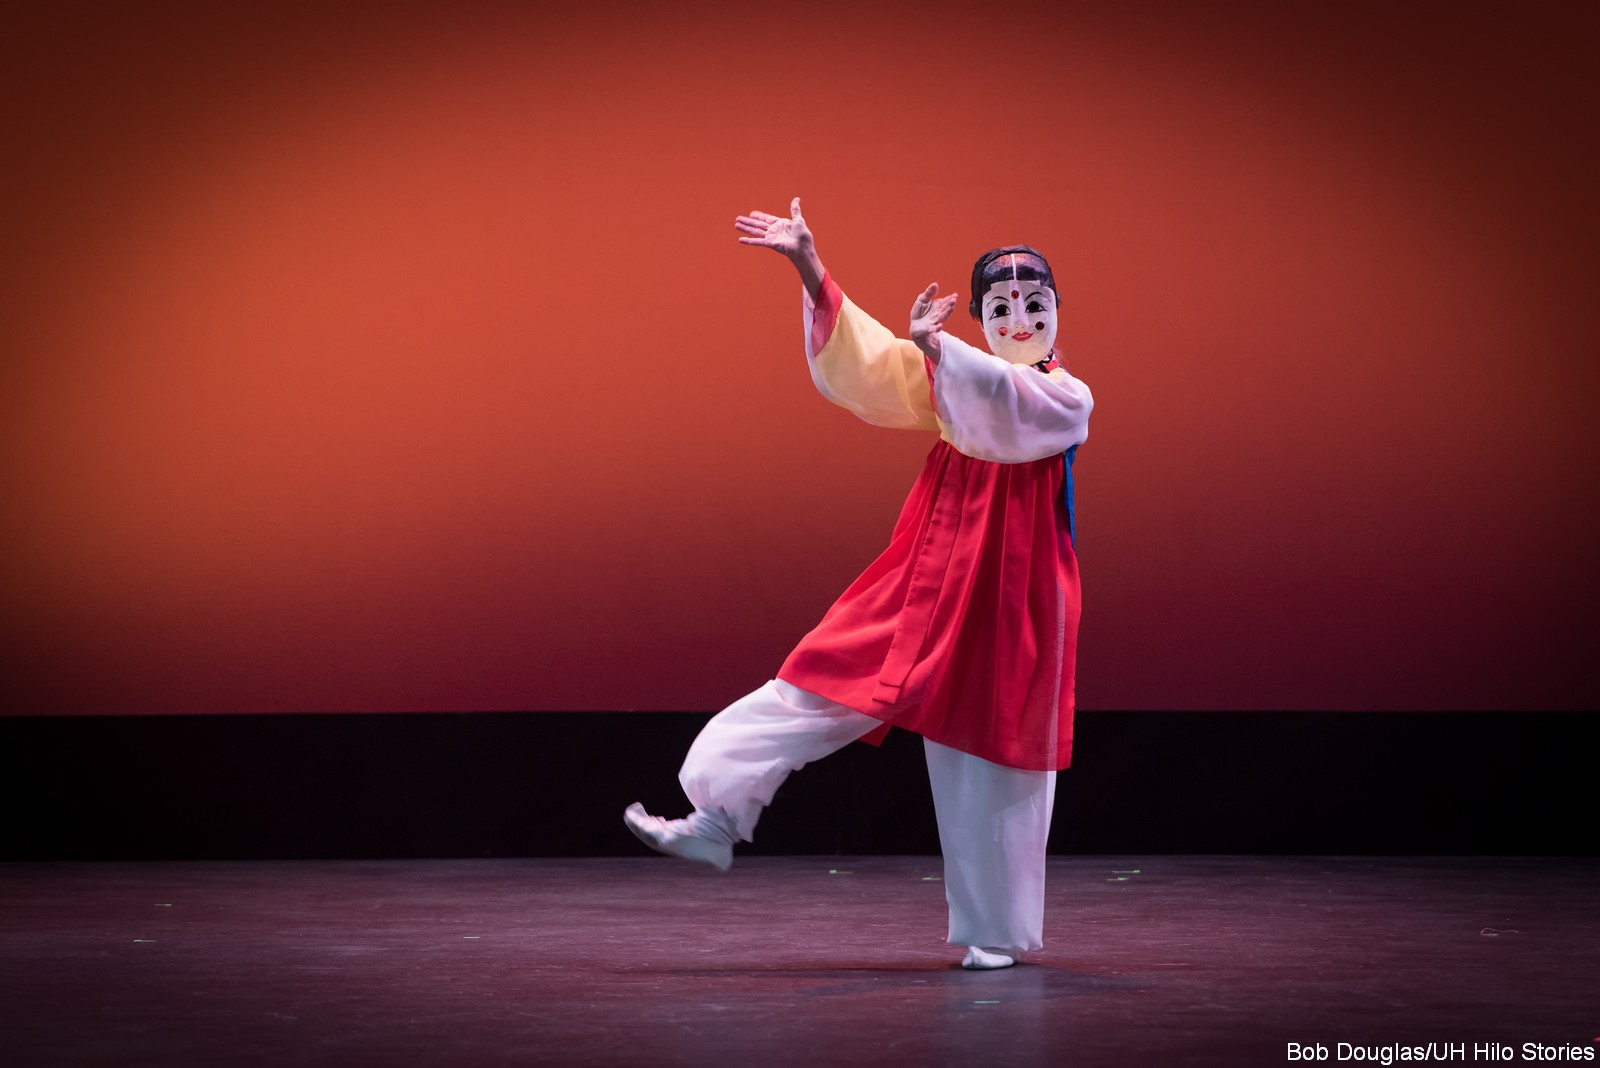 Masked dancer in white pants, red dress, hands extended.